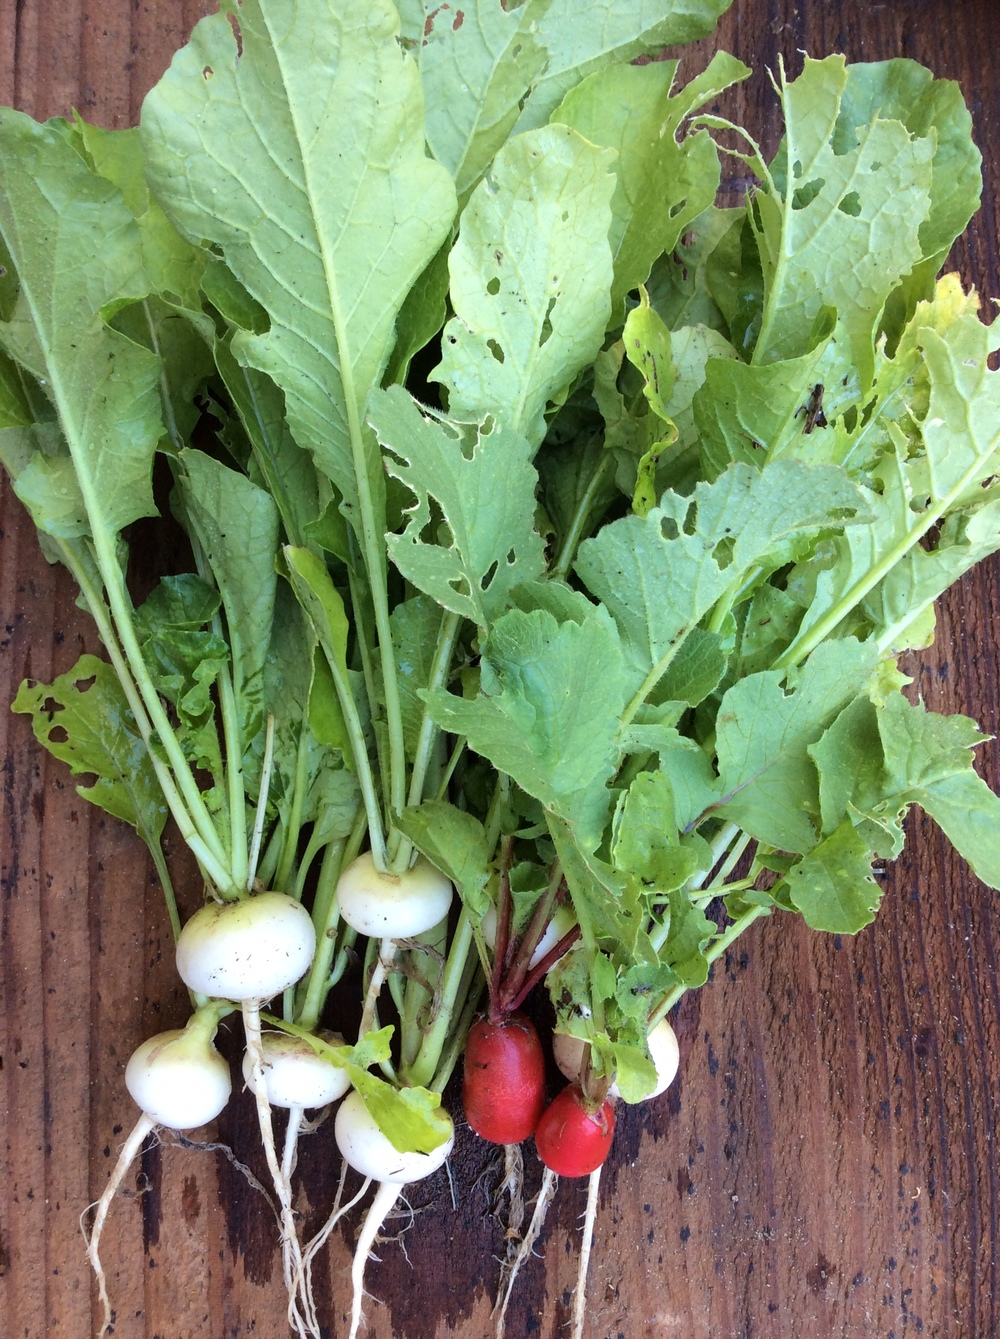 White hailstone radishes from J.L. Hudson, Seedsman and French breakfast radishes from Bountiful Gardens